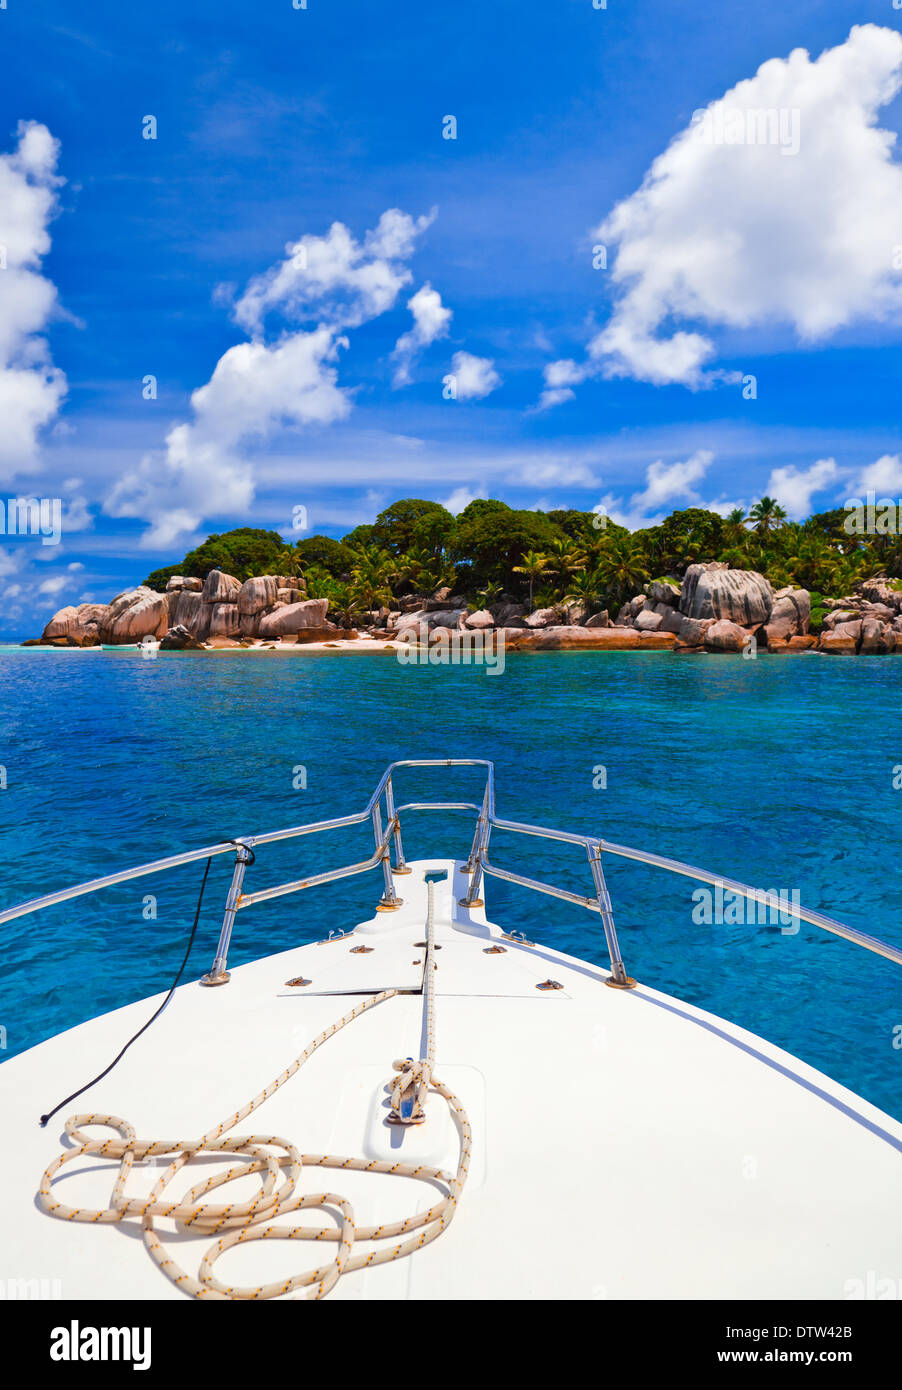 Tropical island and boat - Stock Image